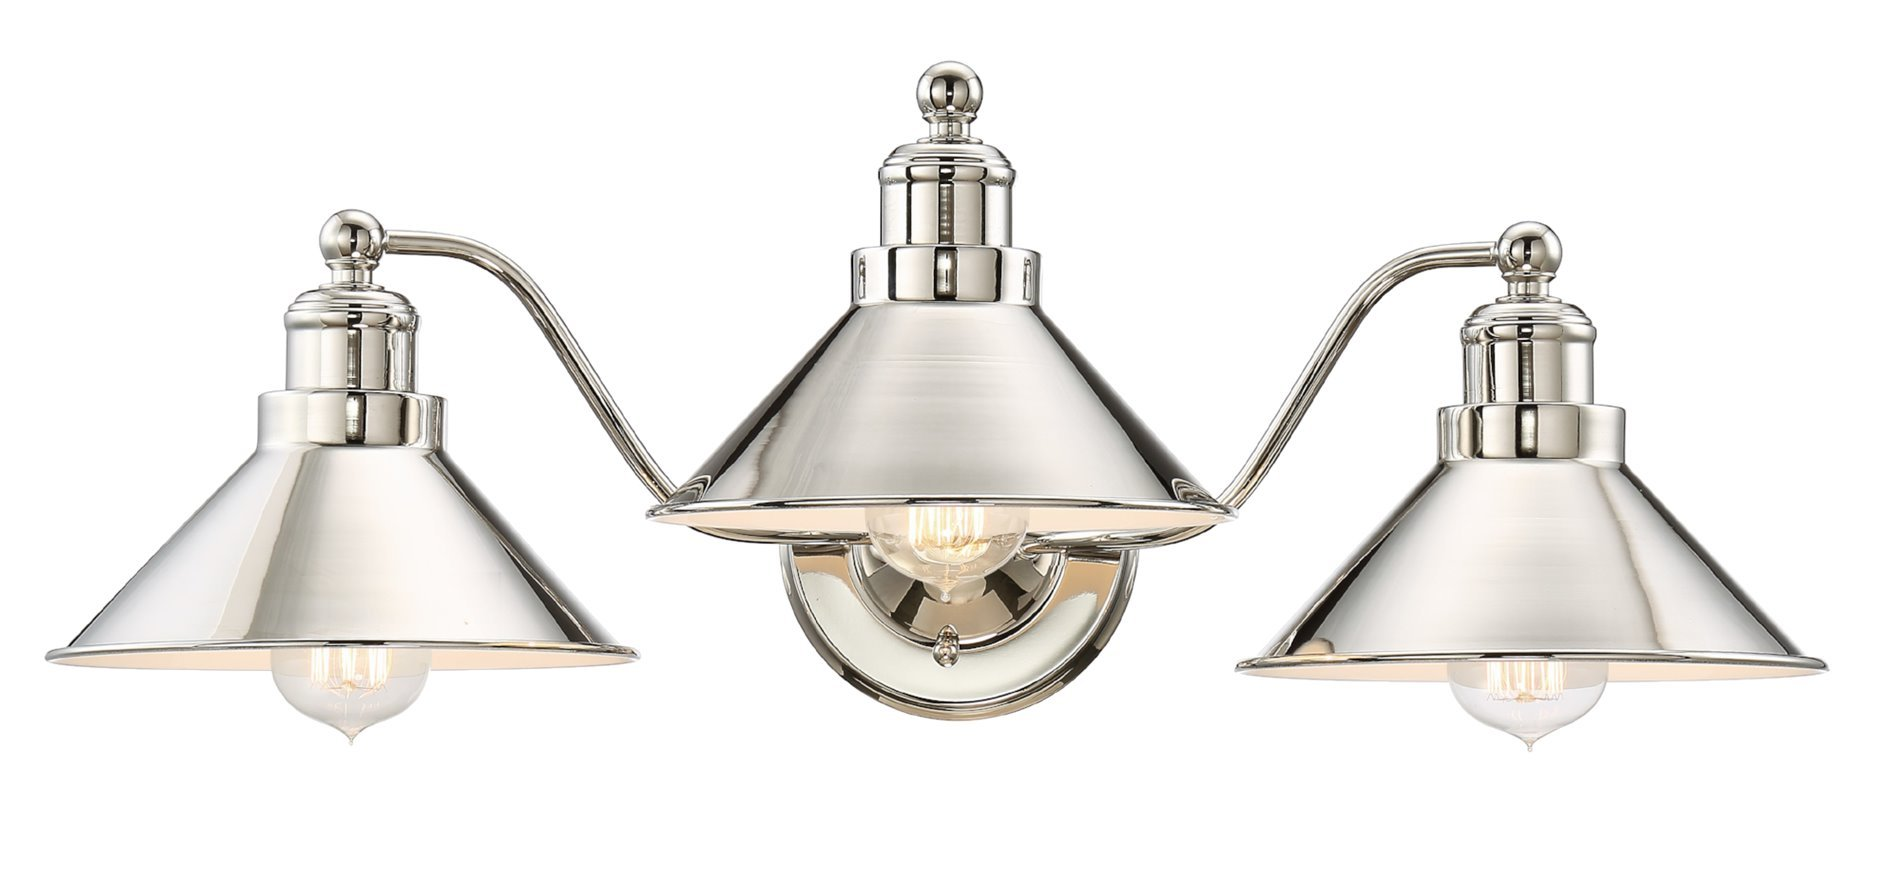 "Kira Home Welton 25.5"" Modern Industrial 3-Light Vanity/Bathroom Light, Polished Nickel Finish - INDUSTRIAL, MODERN DESIGN: This large, elegant 3-light vanity emits a gorgeous glow capable of providing a bright light in any setting. Featuring a polished nickel finish, this fancy fixture is a stylish piece that will enhance your home DIMENSIONS: Wall Sconce: 9.5"" (H) x 25.5"" (L) x 12.25"" Projection from wall, Back plate: 0.75"" (H) x 5.5"" (D), Shade: 3.75"" (H) x 8.5"" (D). Dimmer compatible UL LISTED FOR YOUR SAFETY: UL listed for damp locations. Uses (3) LED, CFL or up to 60W traditional incandescent medium base bulbs. Bulbs sold separately - bathroom-lights, bathroom-fixtures-hardware, bathroom - 615ZSmRL3rL -"